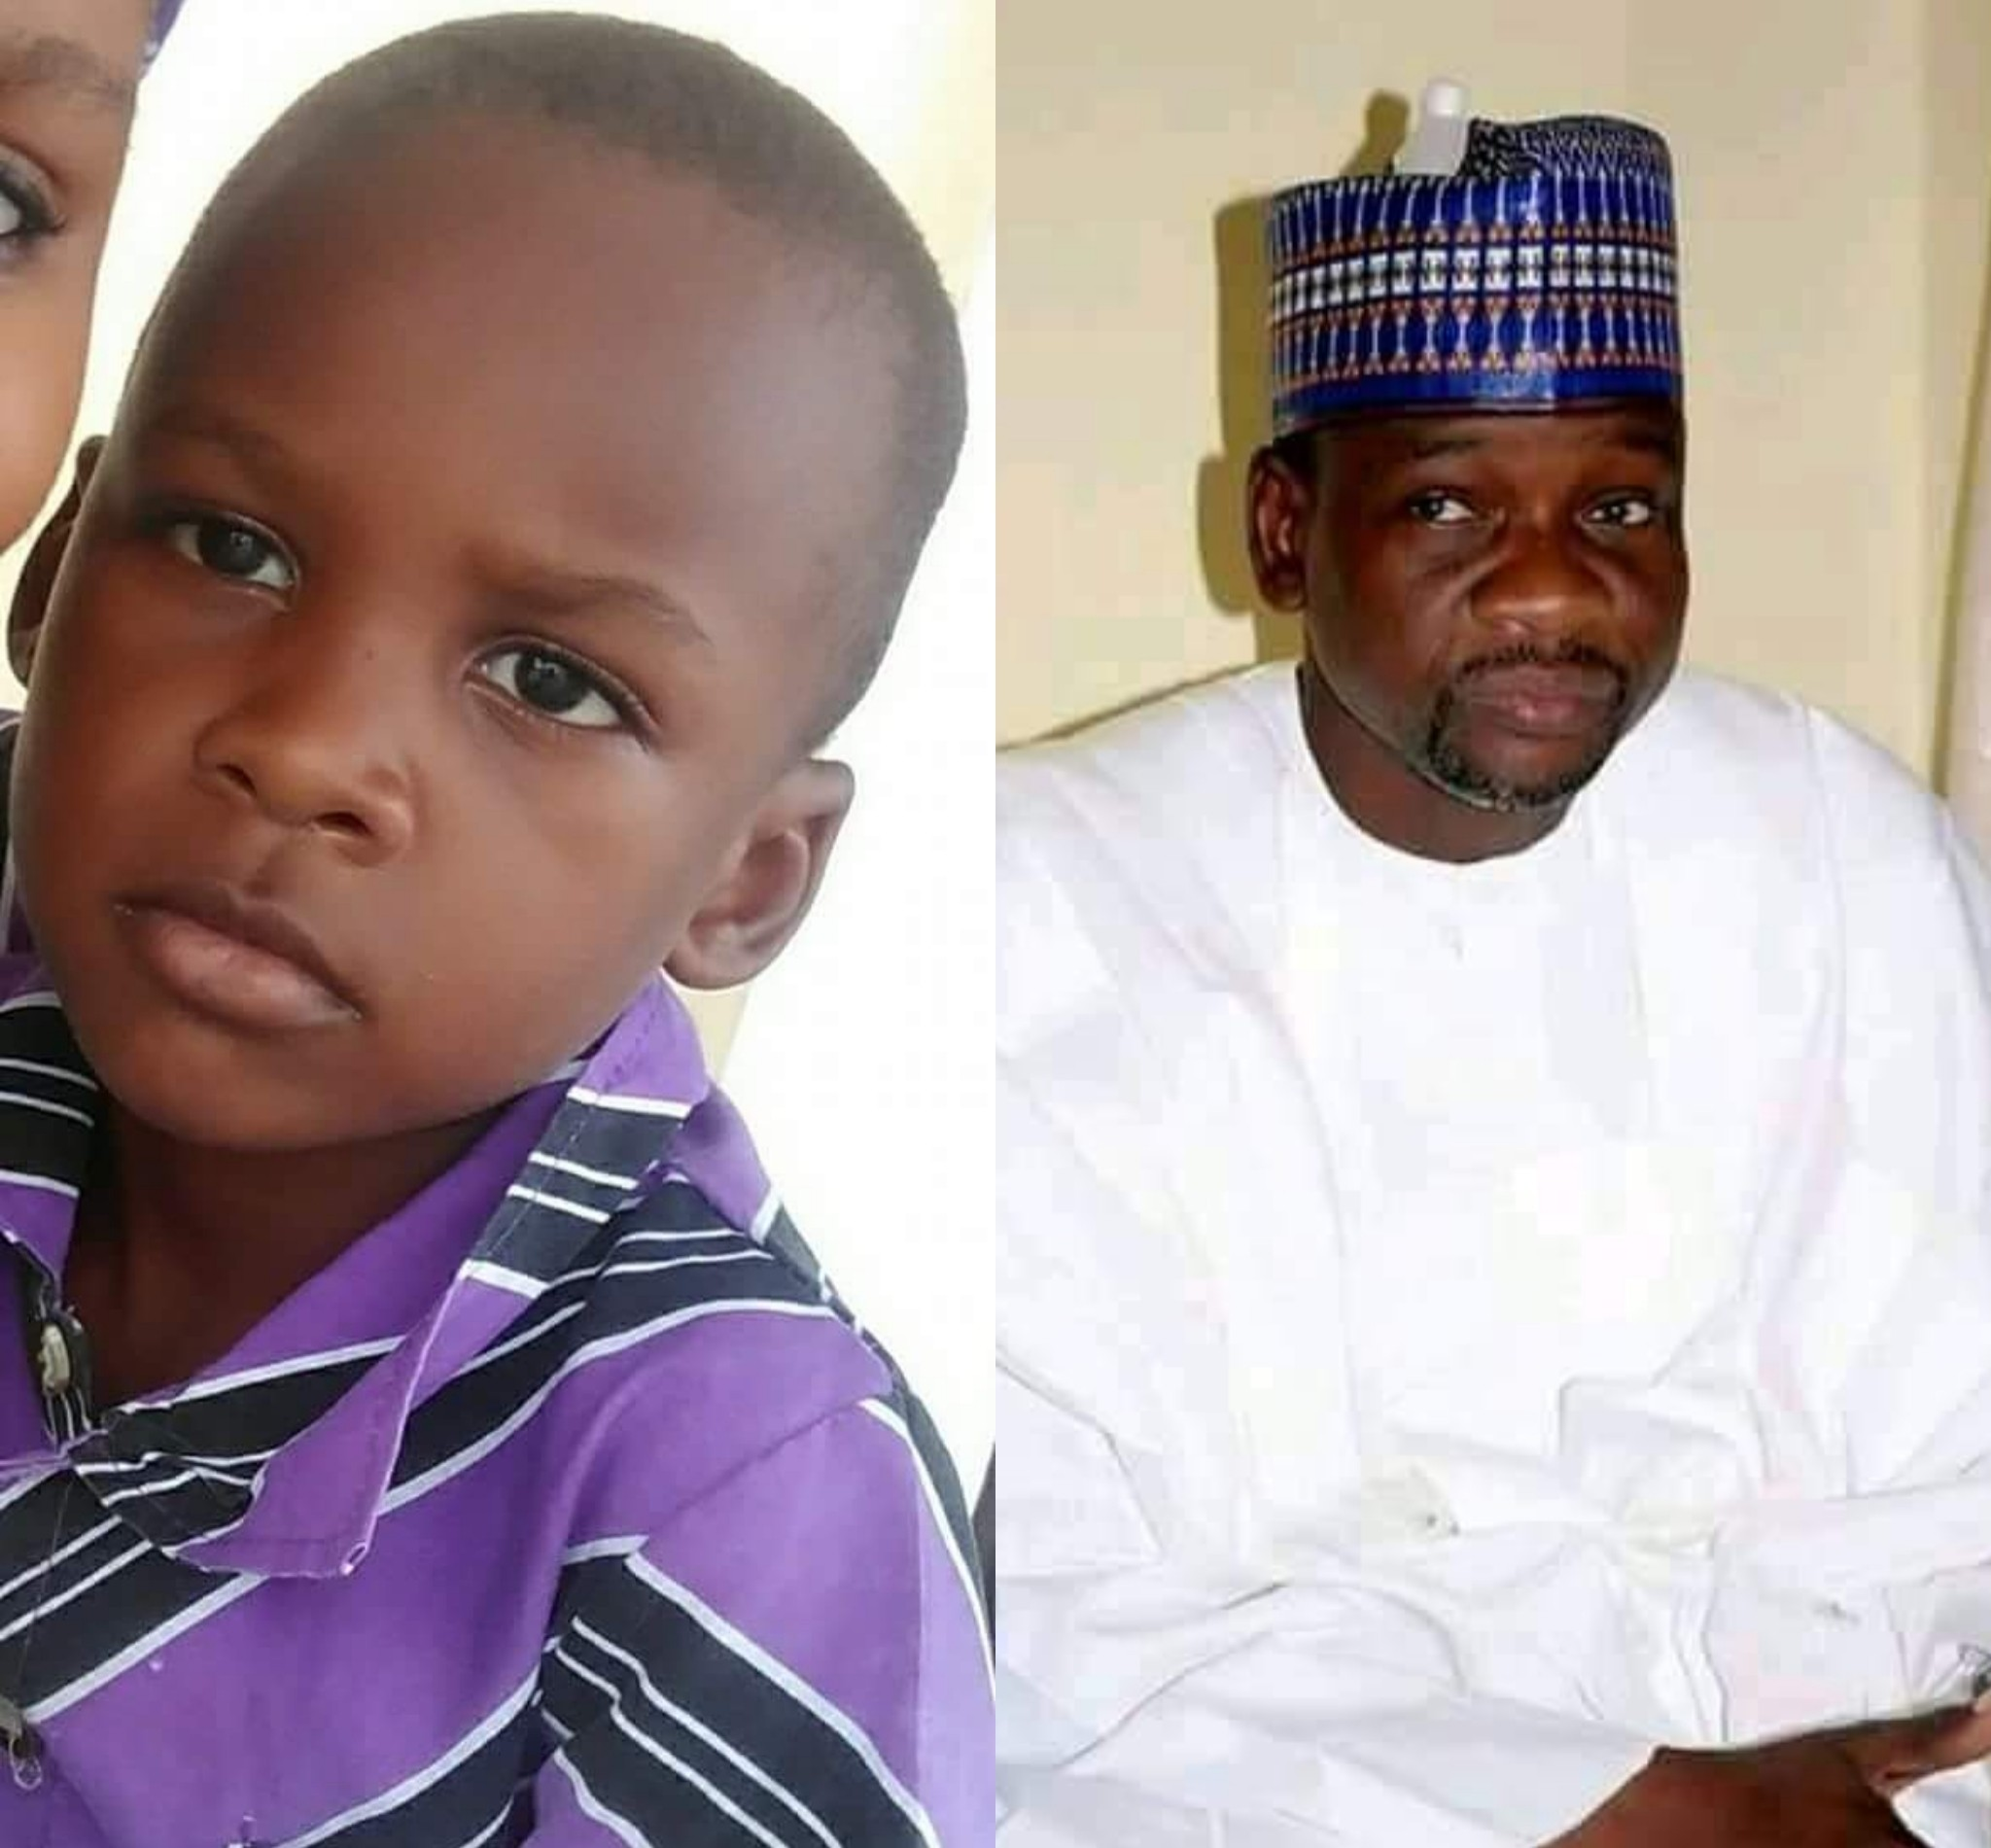 4-year-old son of Borno APC chairman kidnapped in Maiduguri